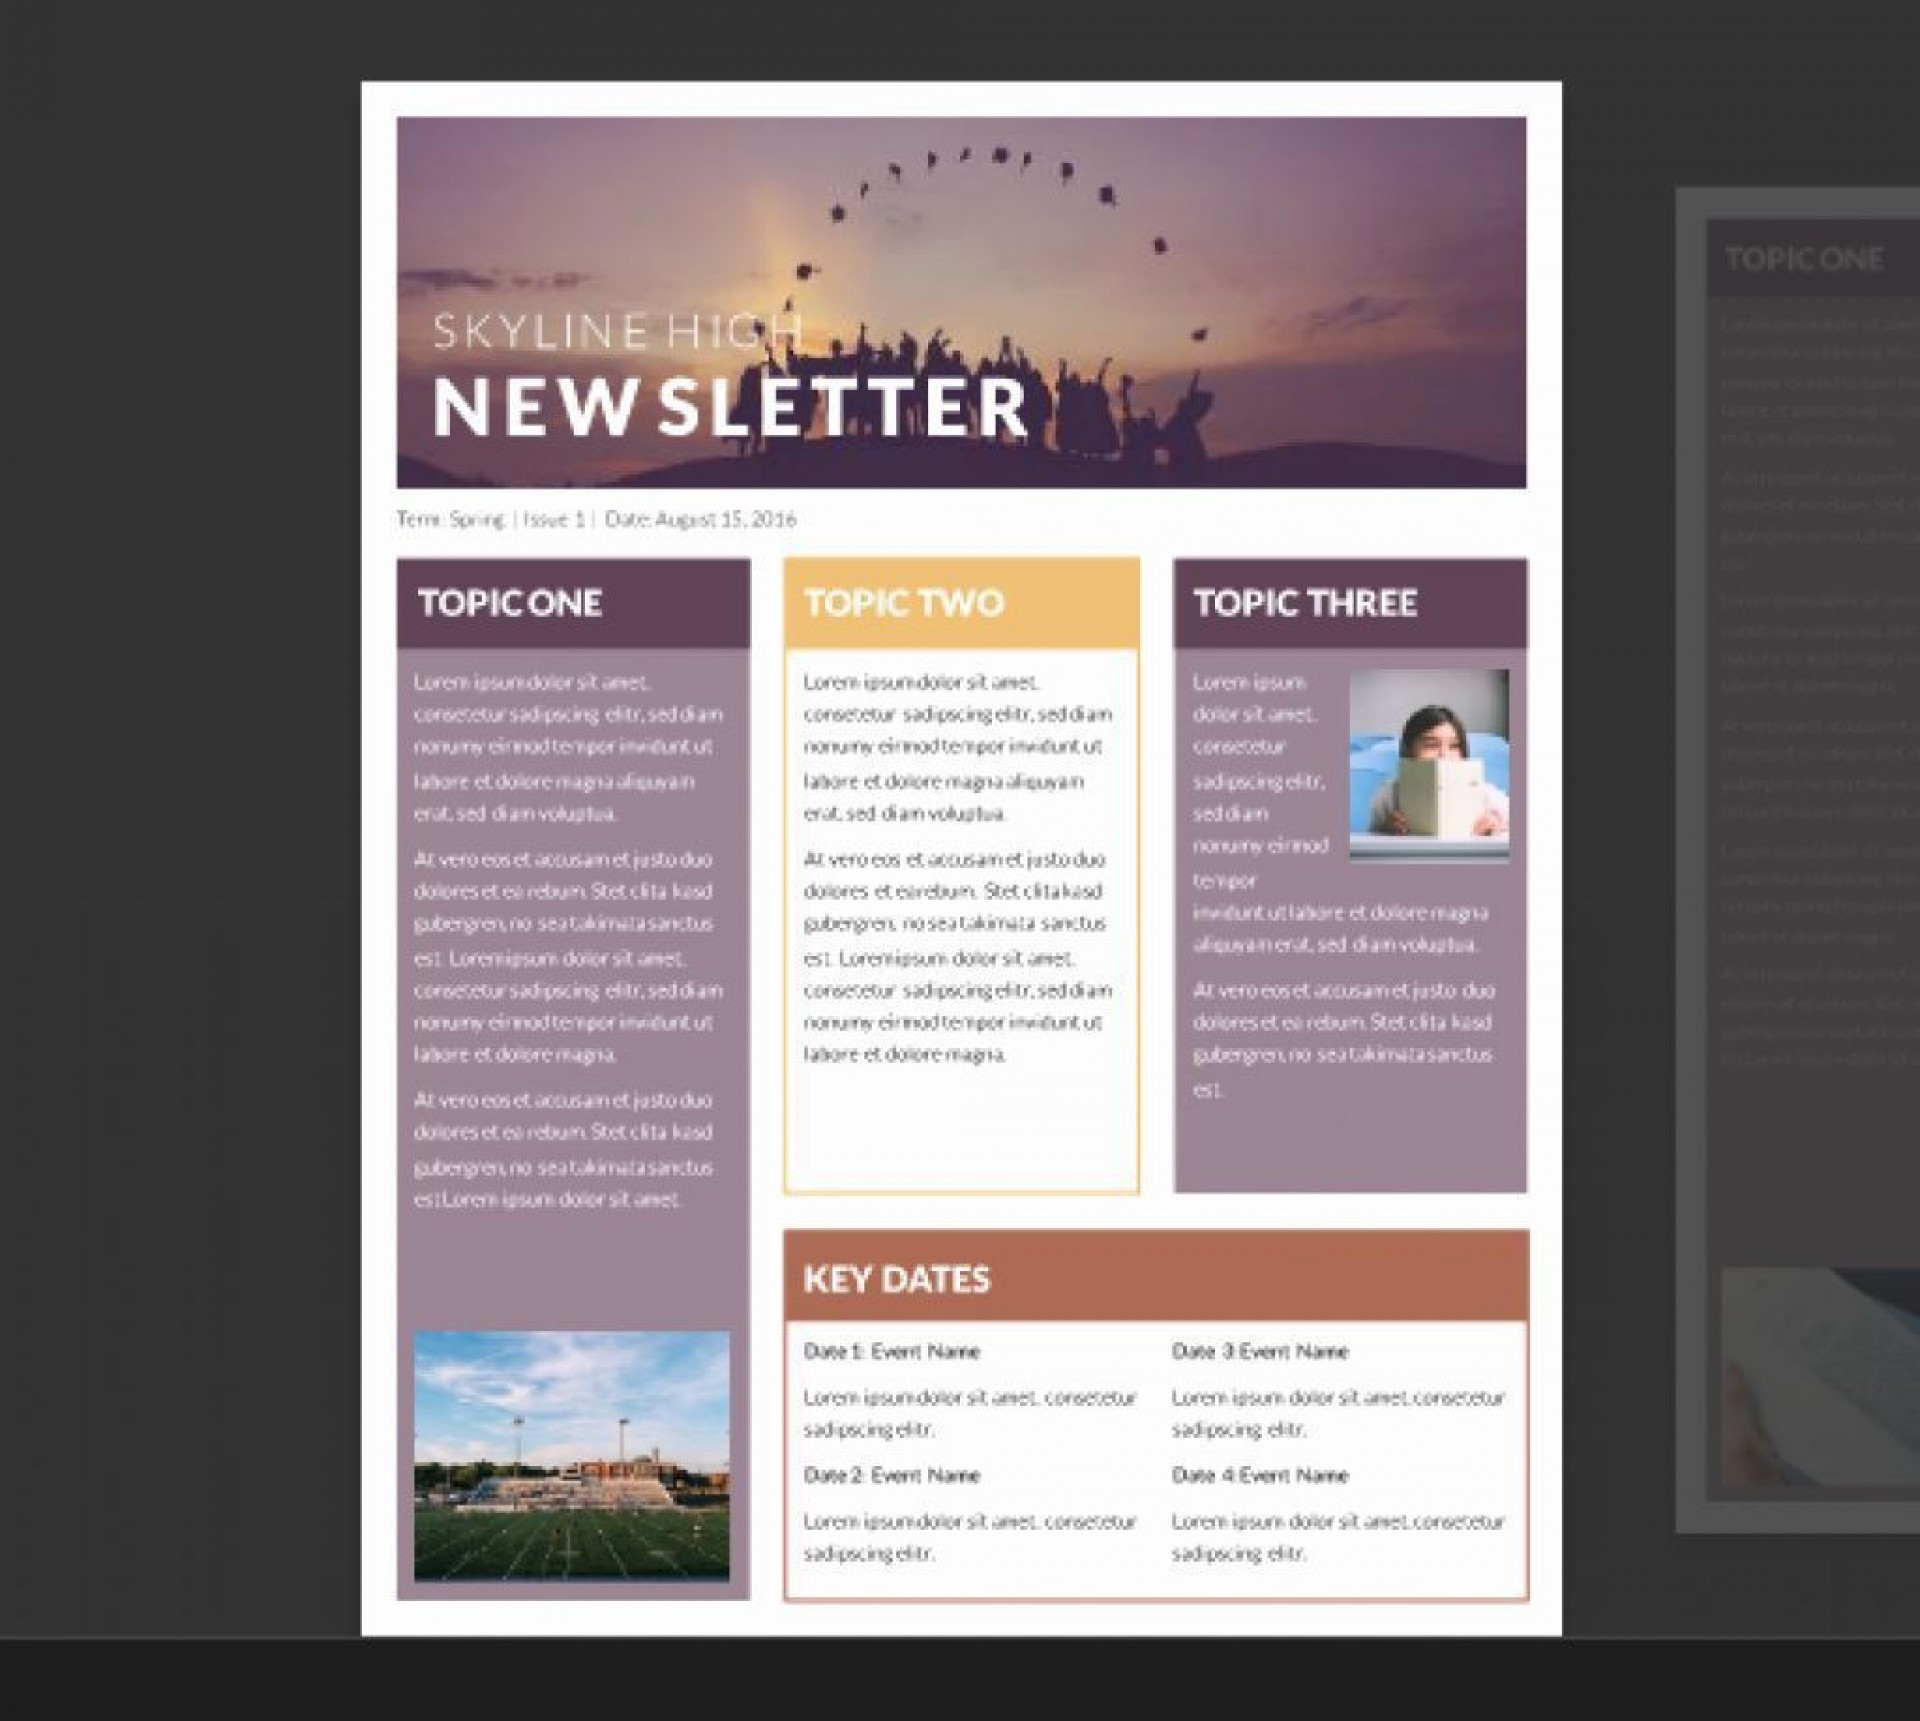 002 Unforgettable Free Newsletter Template For Word 2010 Photo 1920